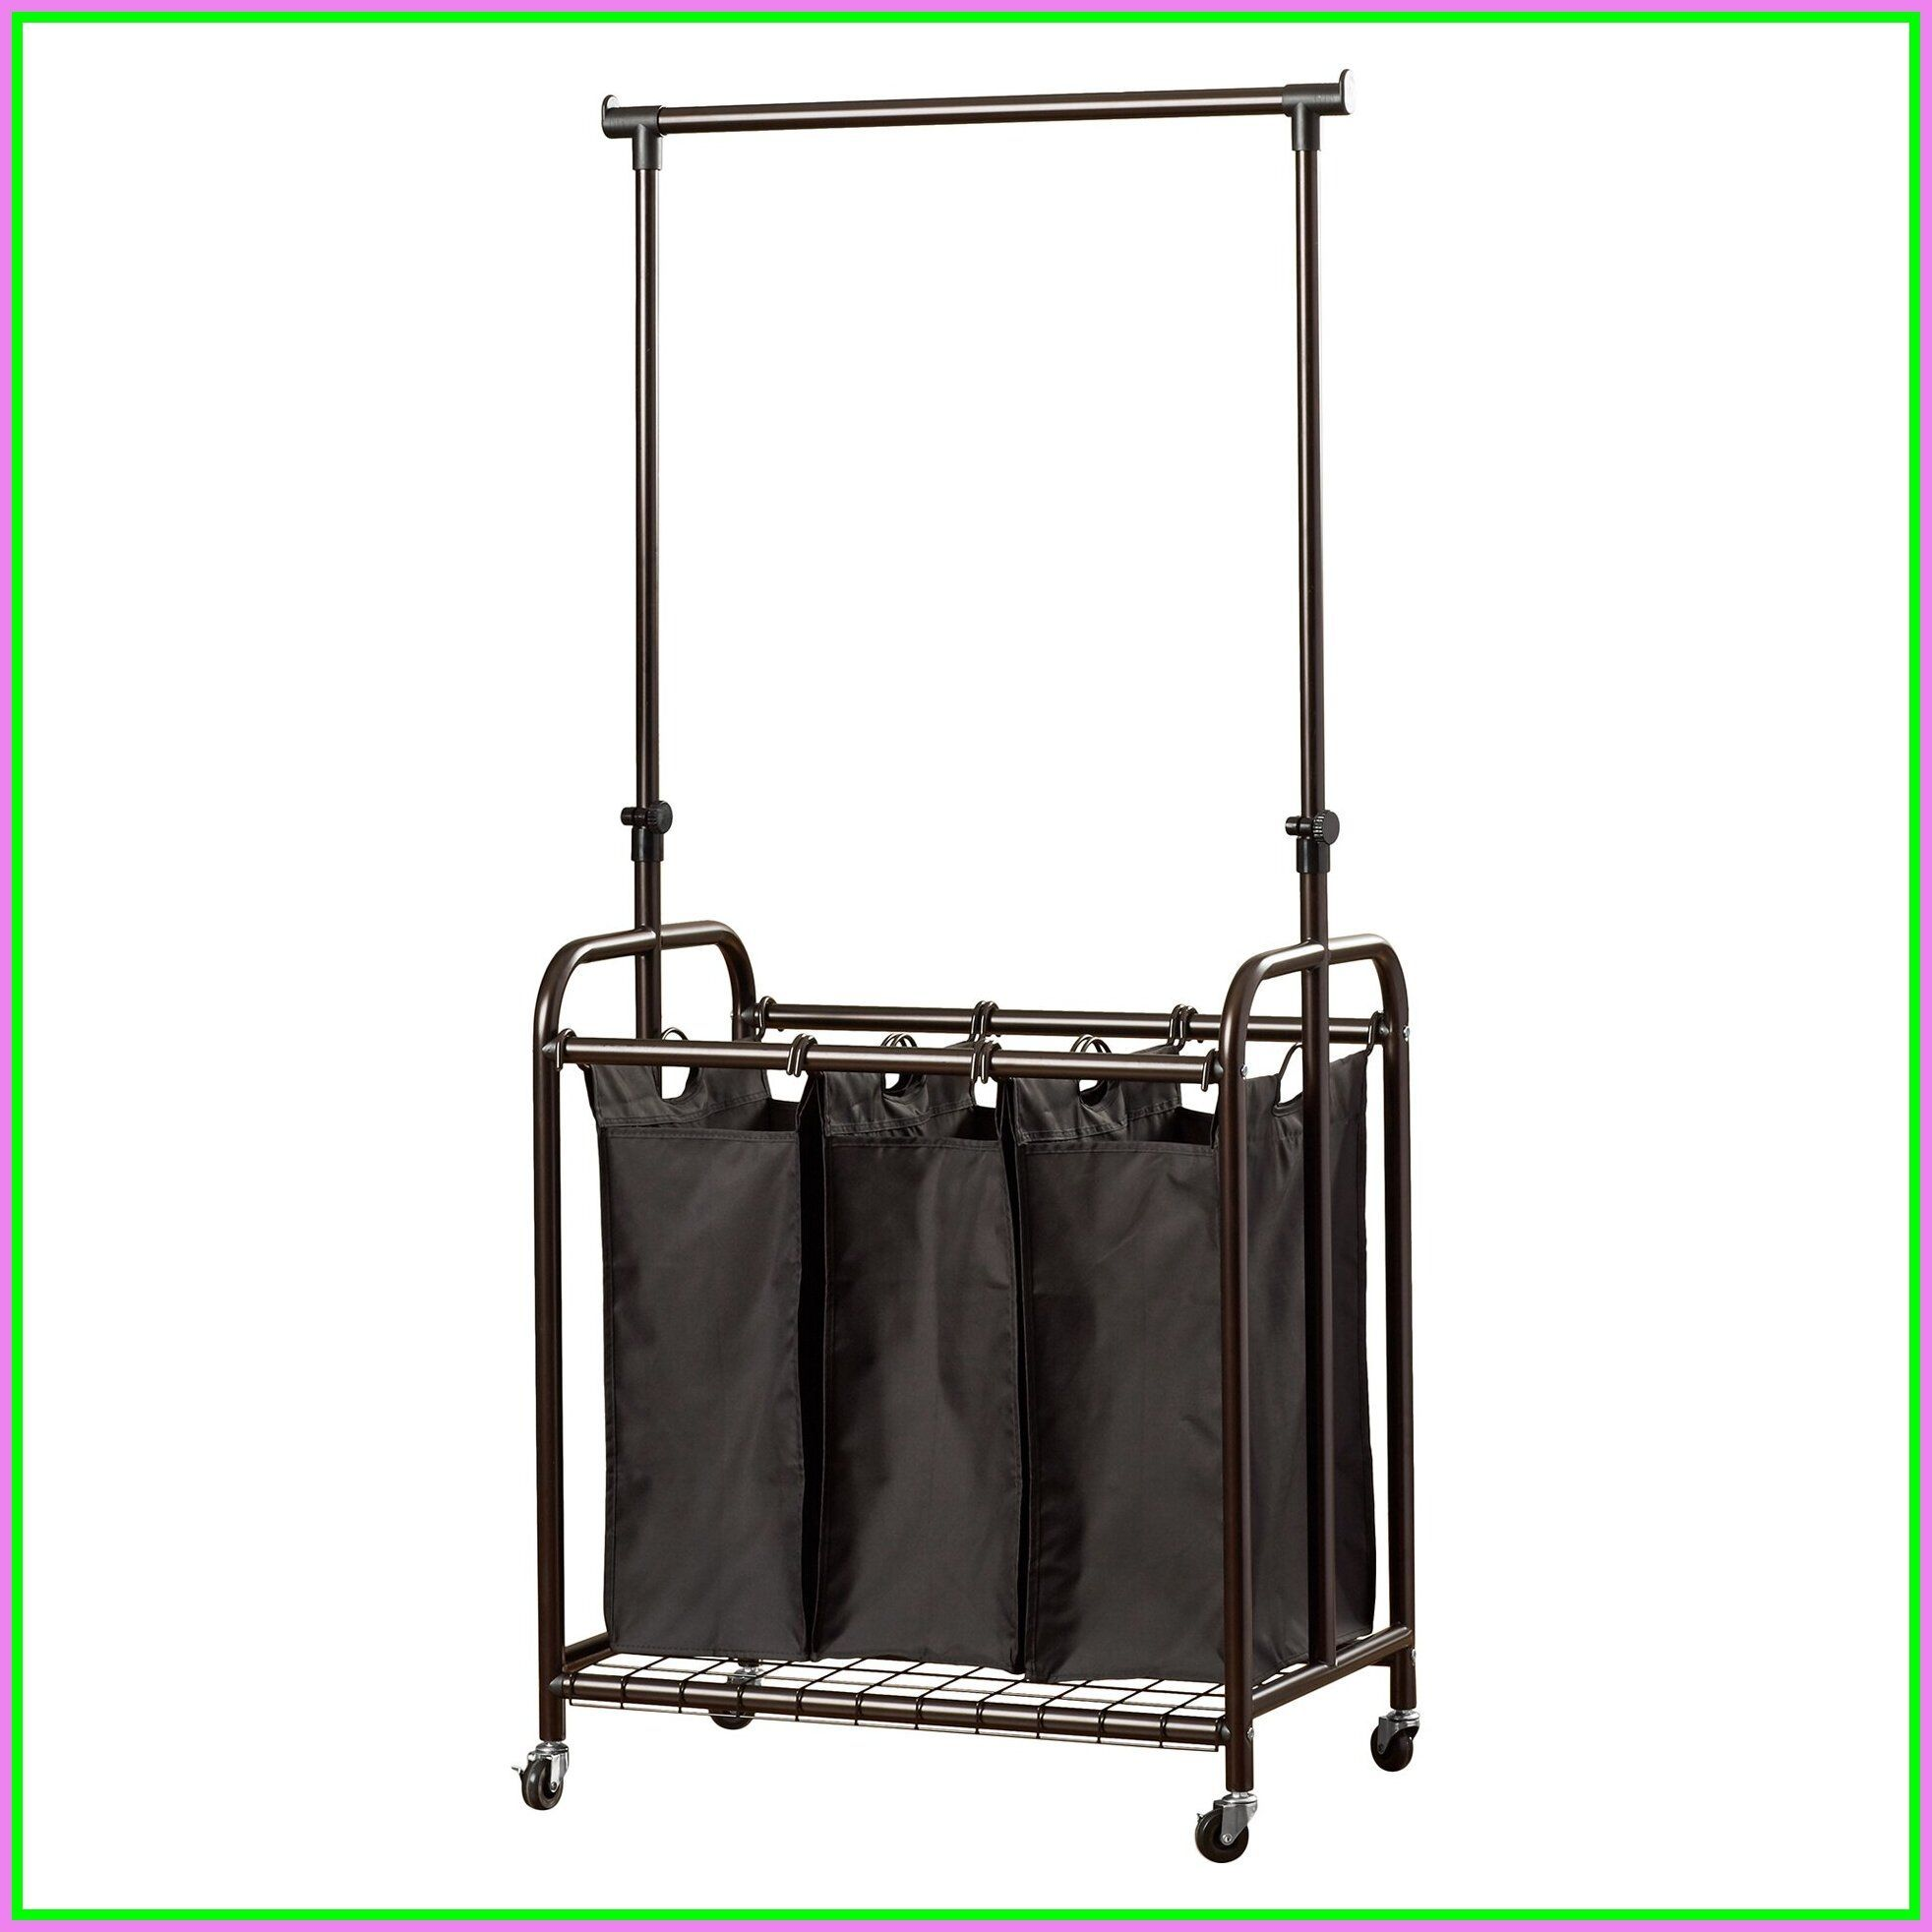 Laundry Room Hanging Bar Industrial Laundry Room Hanging Bar